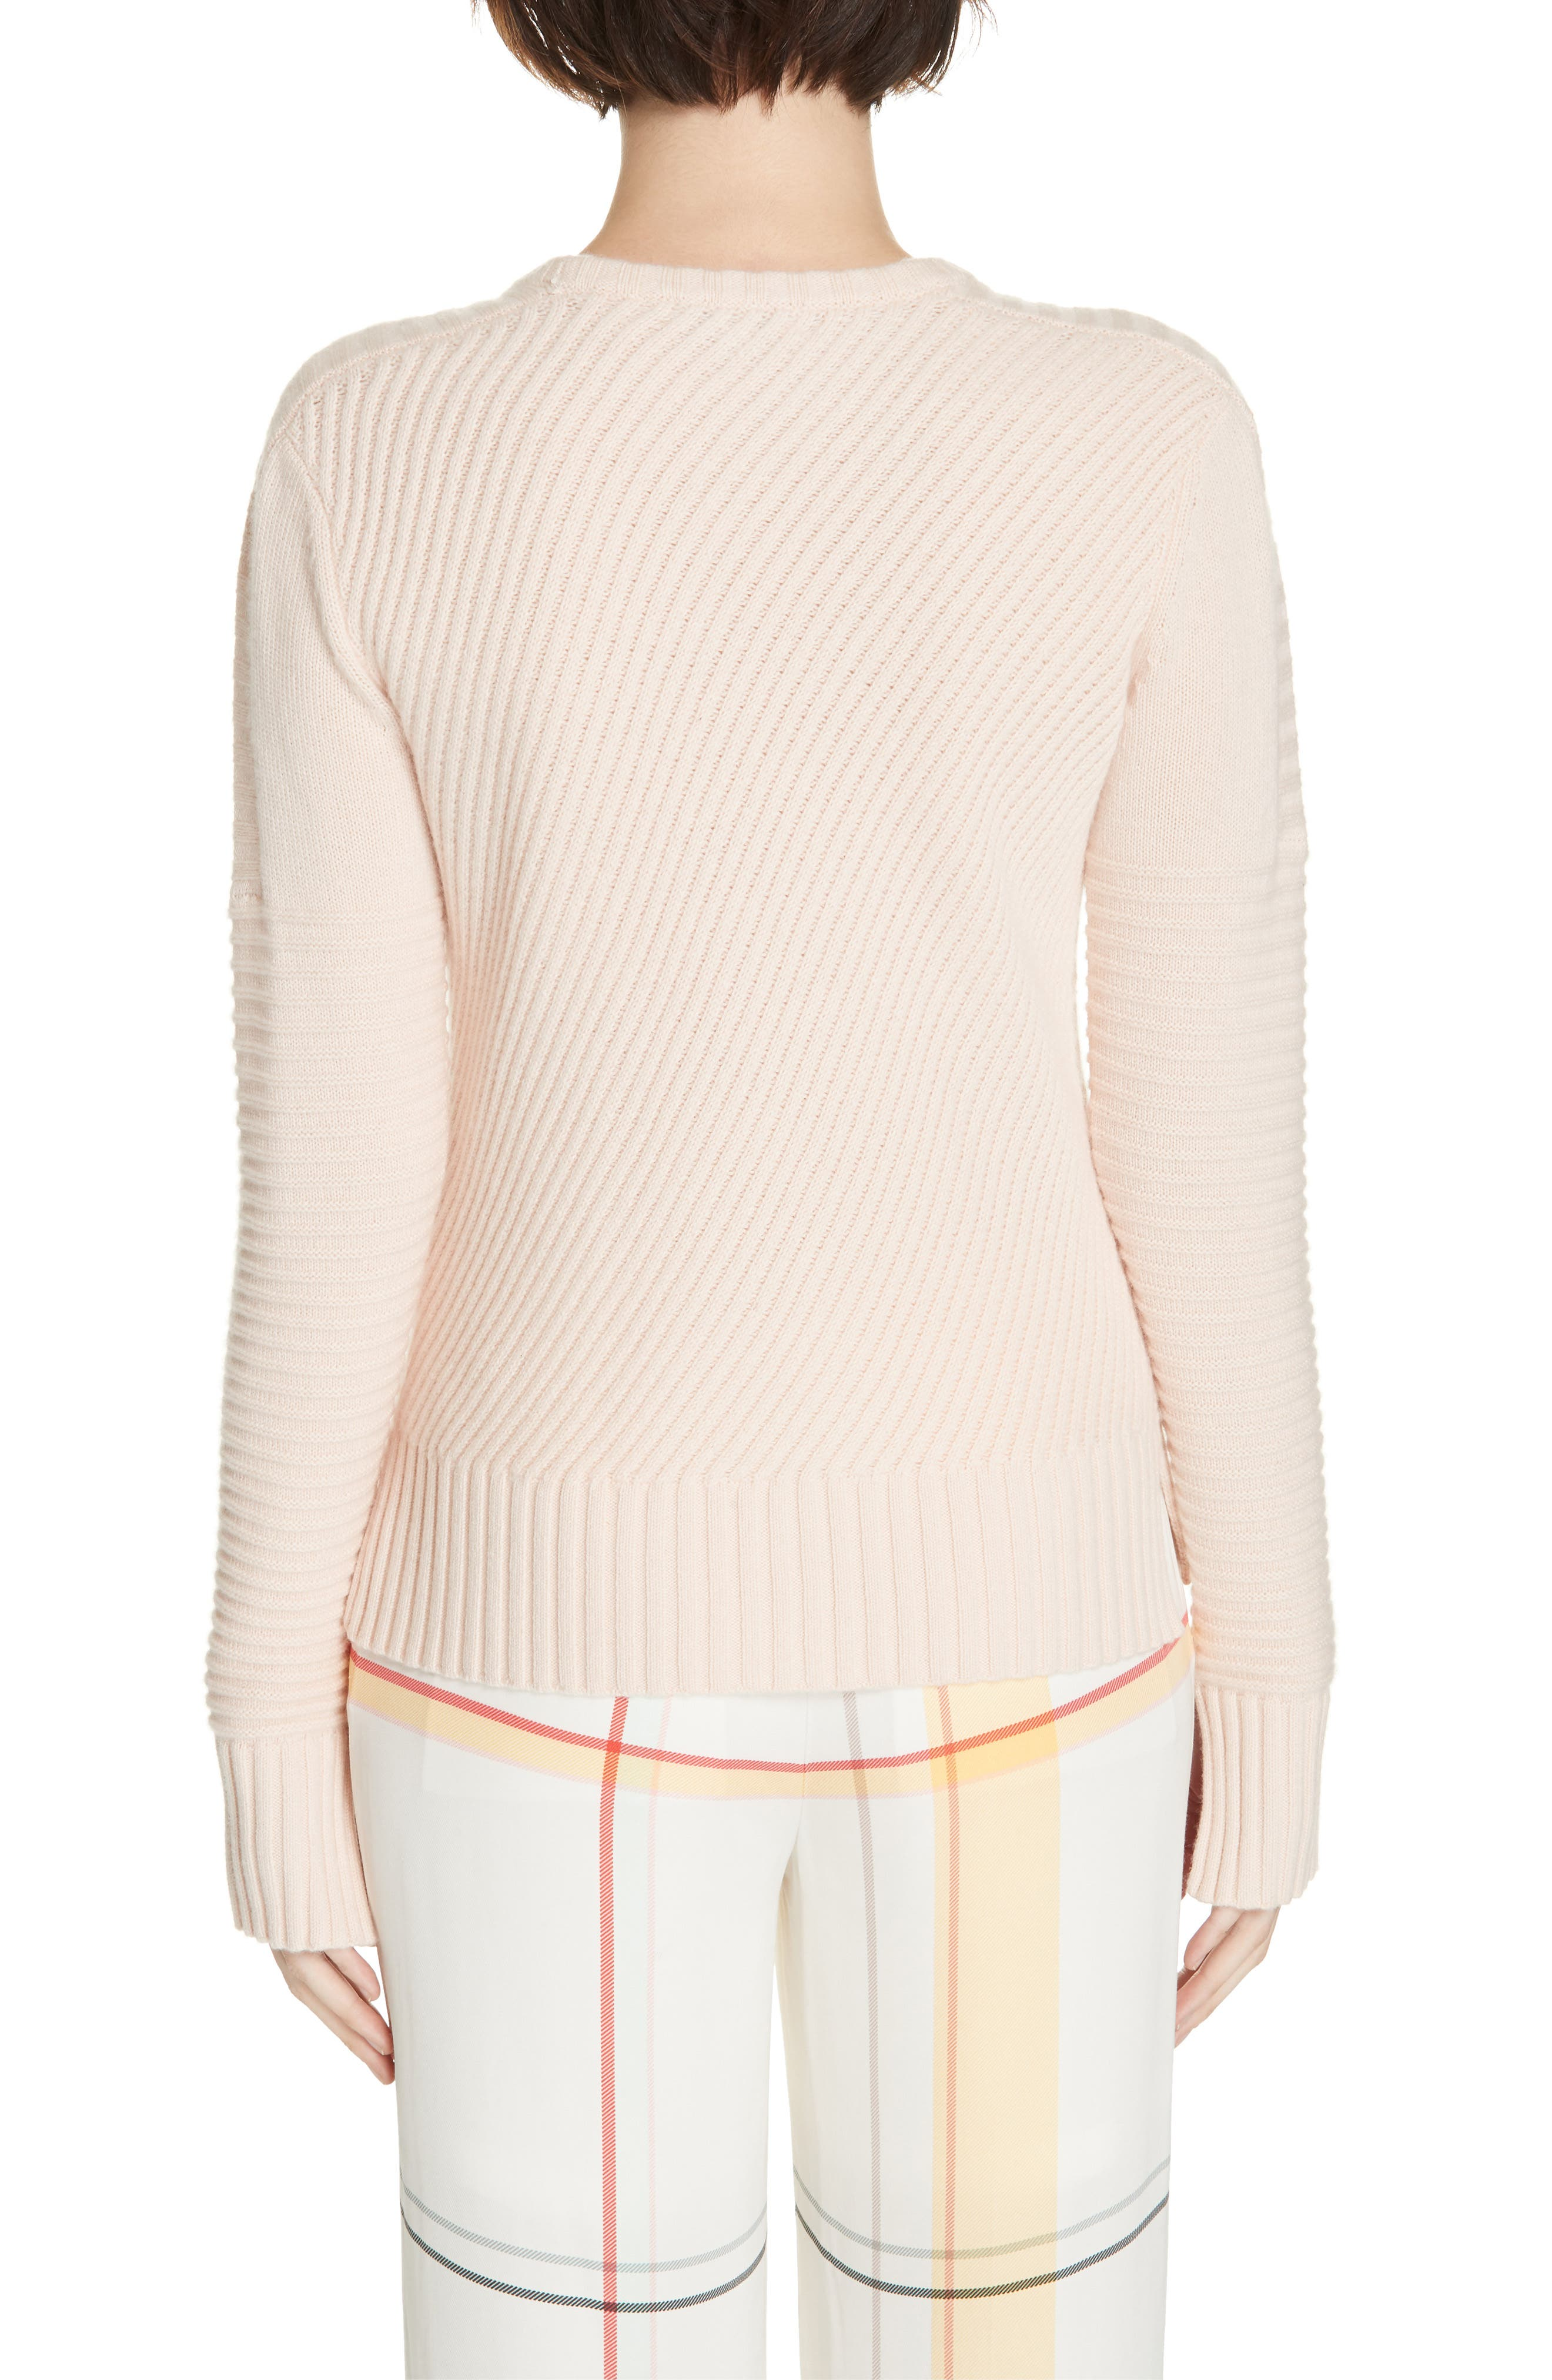 Abril Wool & Cashmere Sweater,                             Alternate thumbnail 2, color,                             ROSETTE